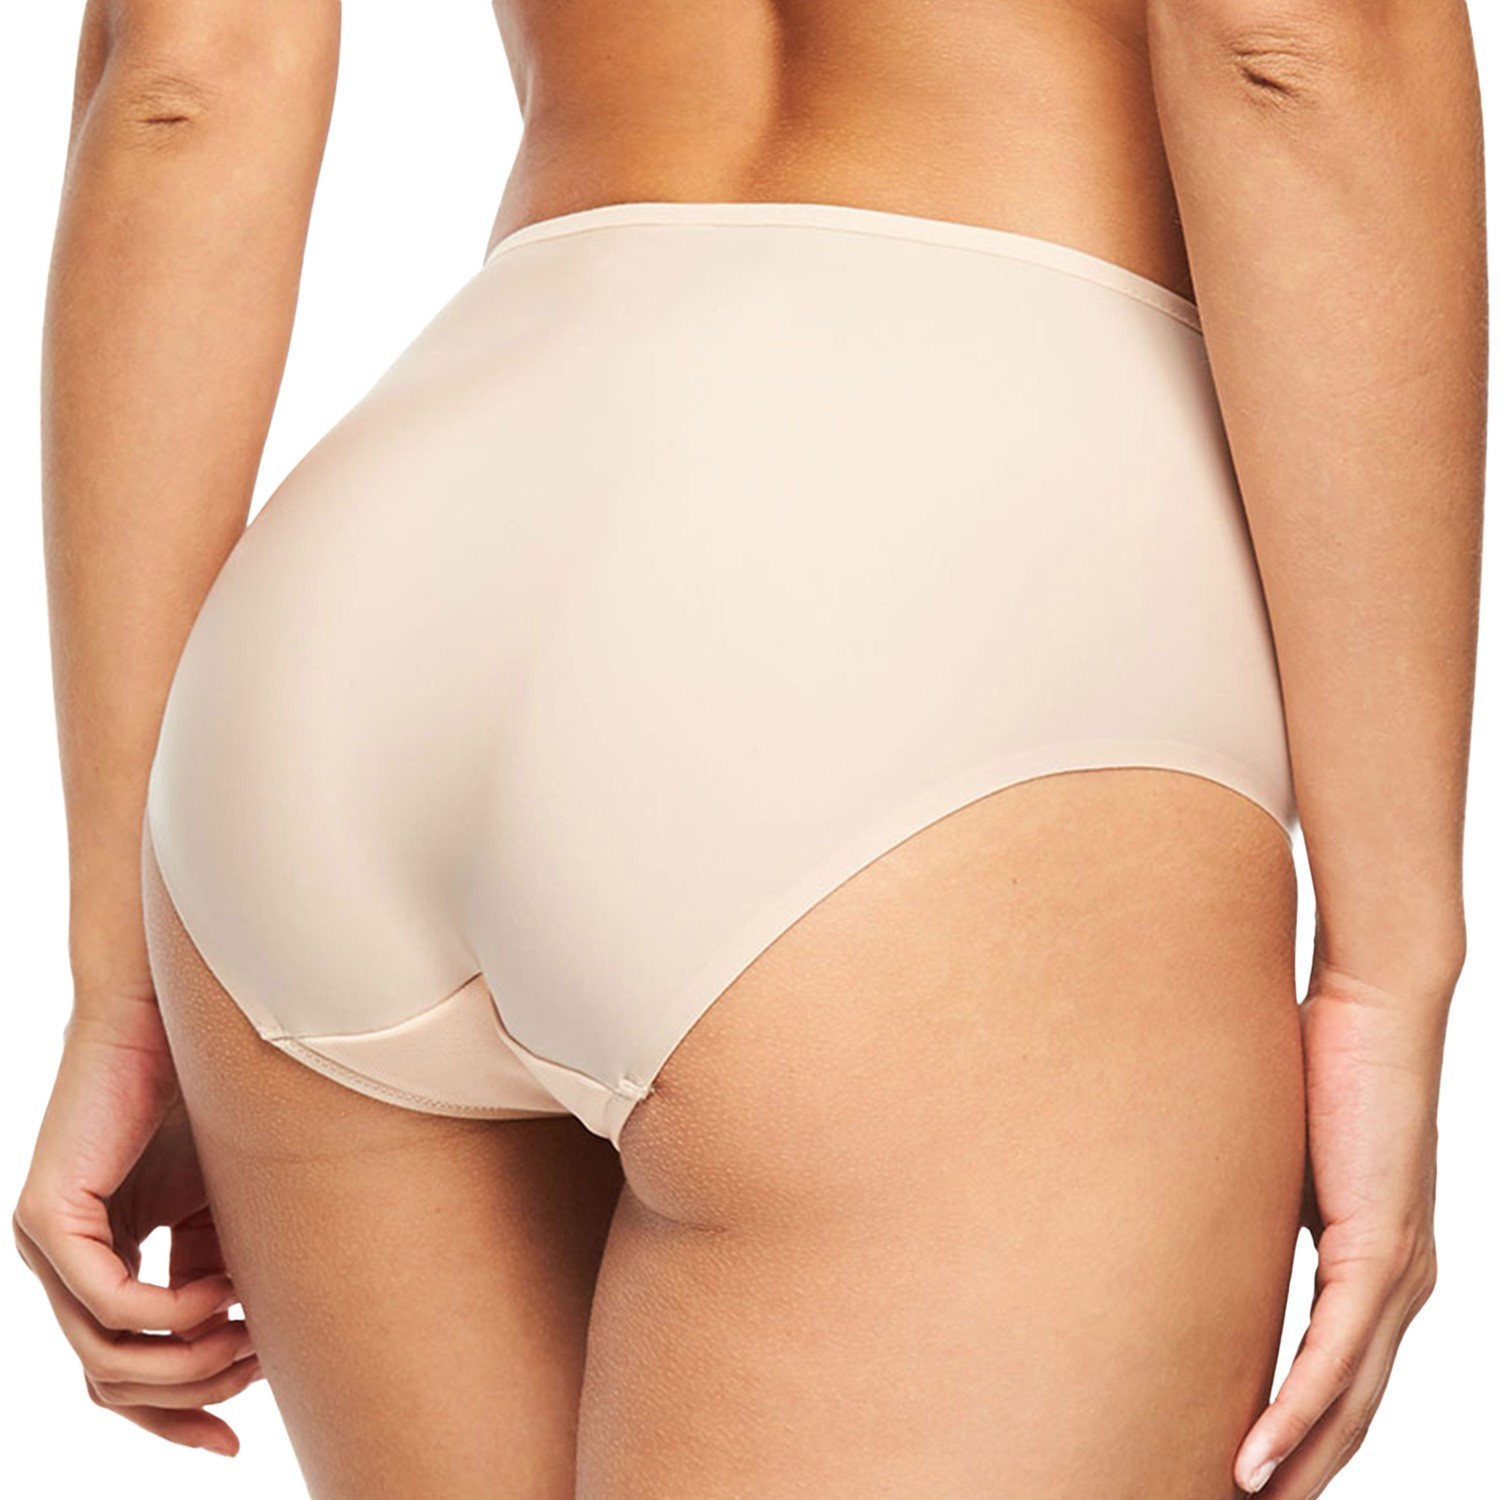 ac4061c11 Chantelle C Magnifique Sexy High Waisted Brief - Shaping   support ...